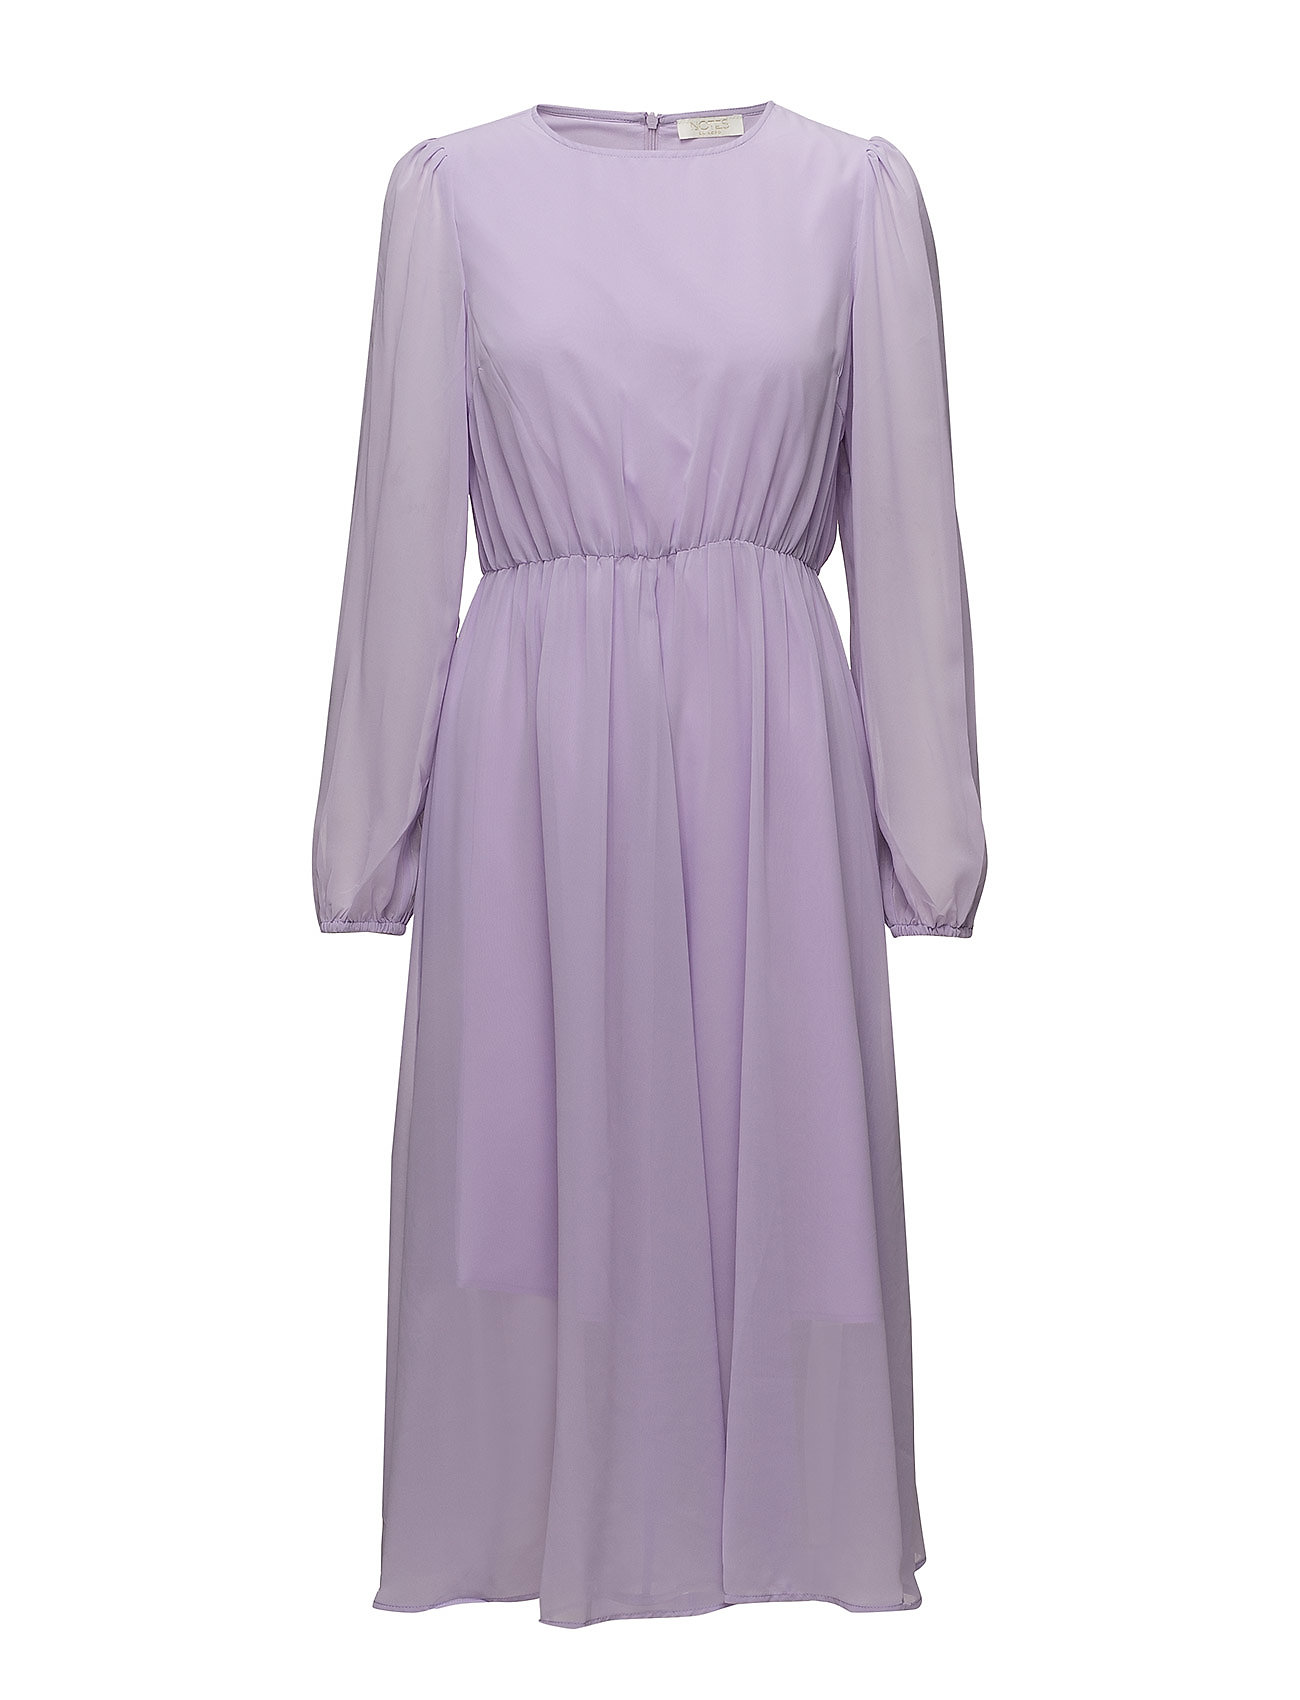 Notes du Nord Inca Dress S - PURPLE MIST